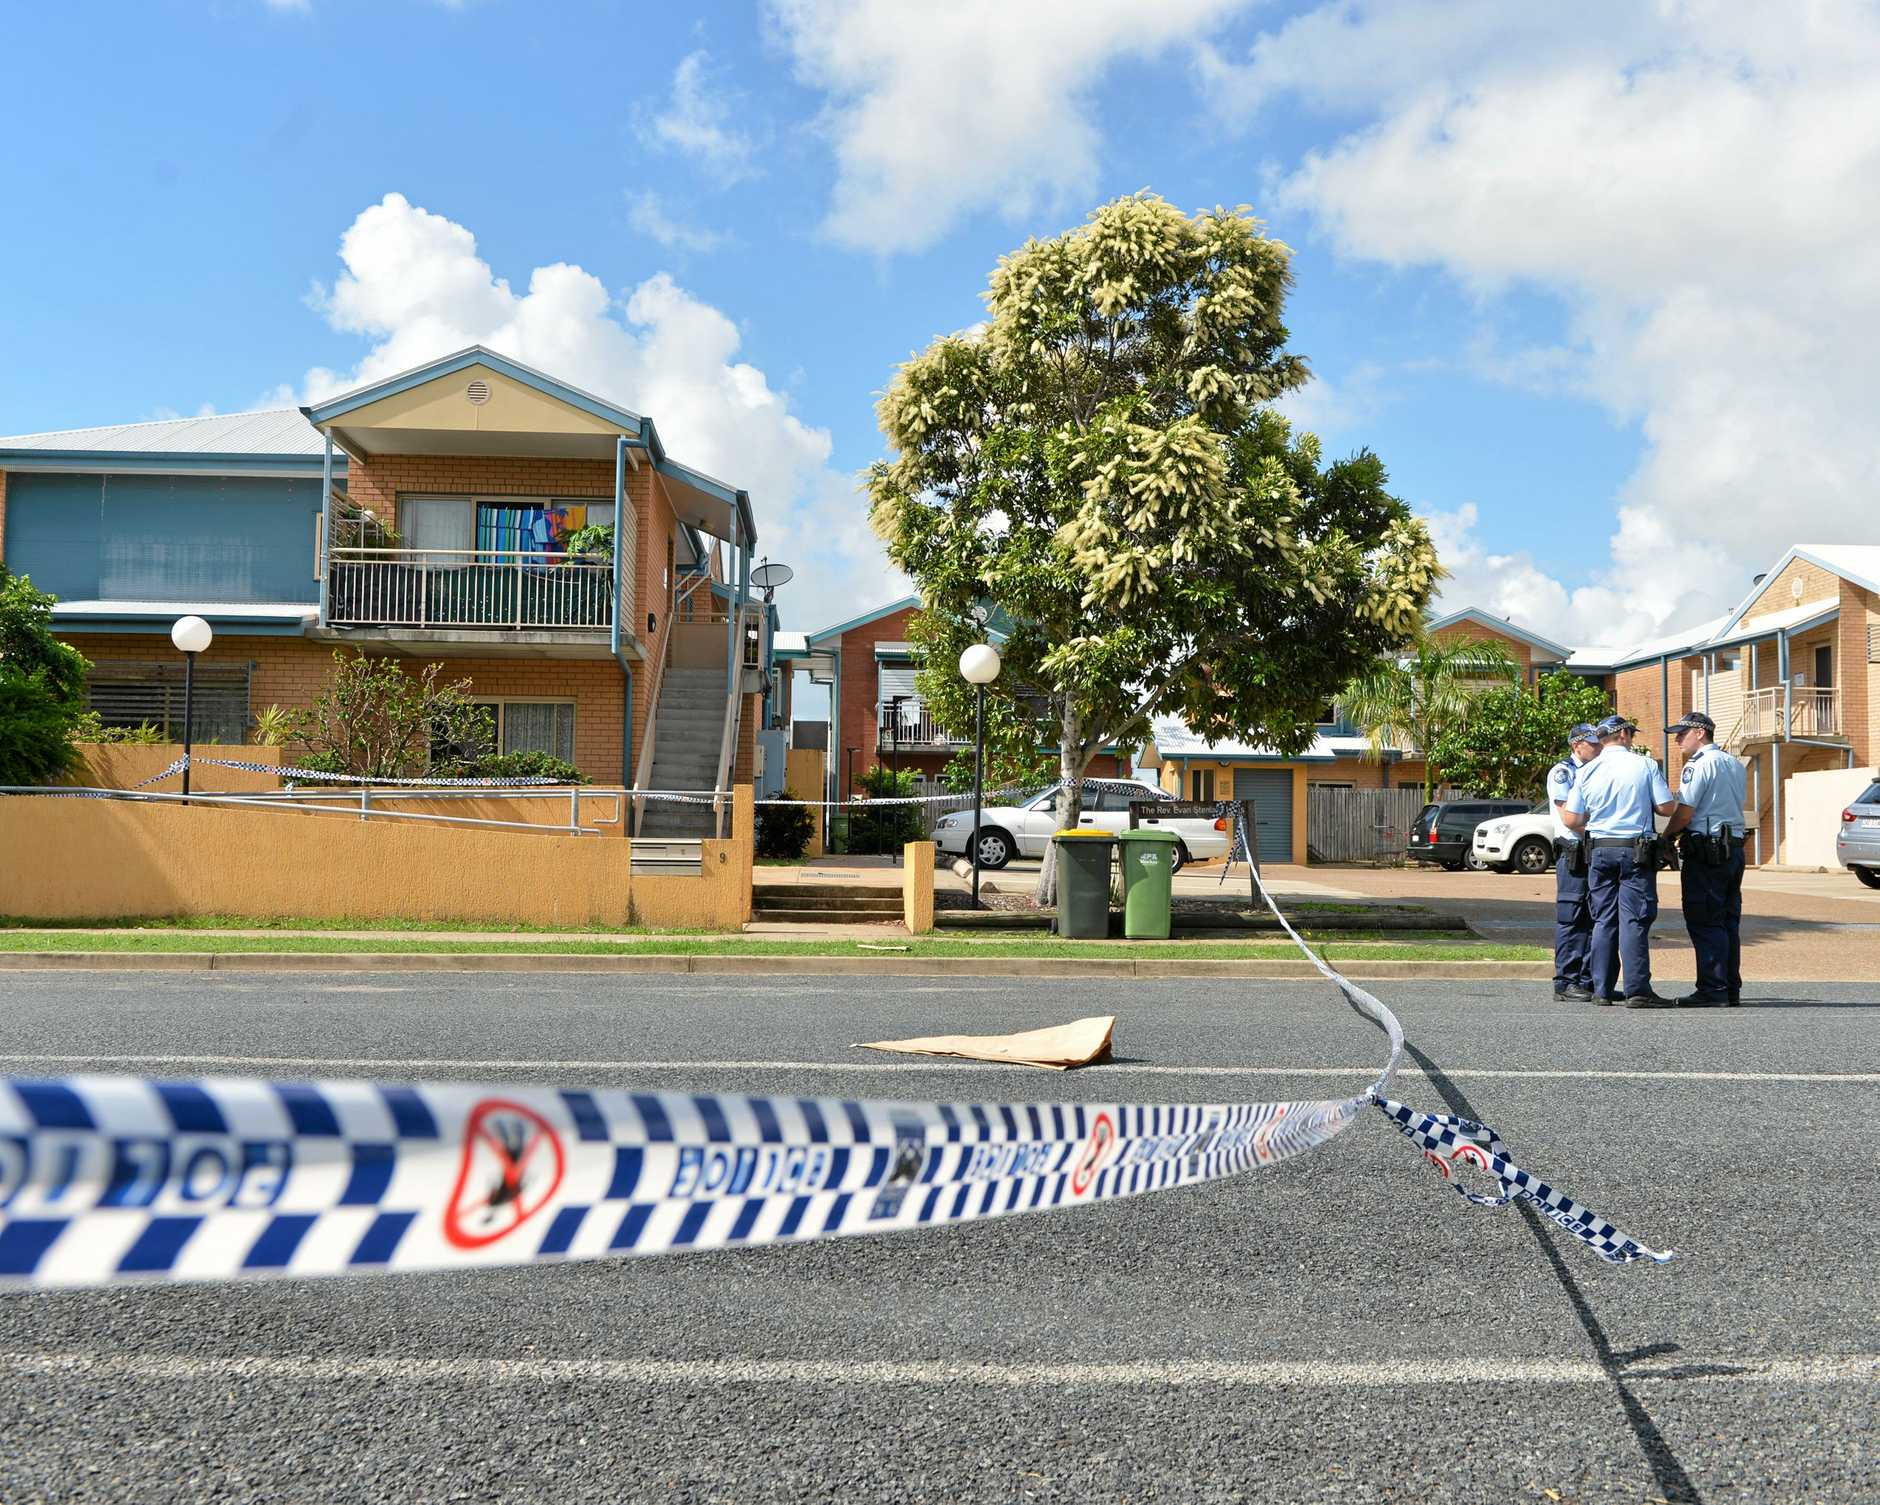 Police guard a crime scene on Boddington Street, East Mackay, after Shandee Blackburn was murdered there in the early hours of Saturday morning. Photo Lee Constable / Daily Mercury